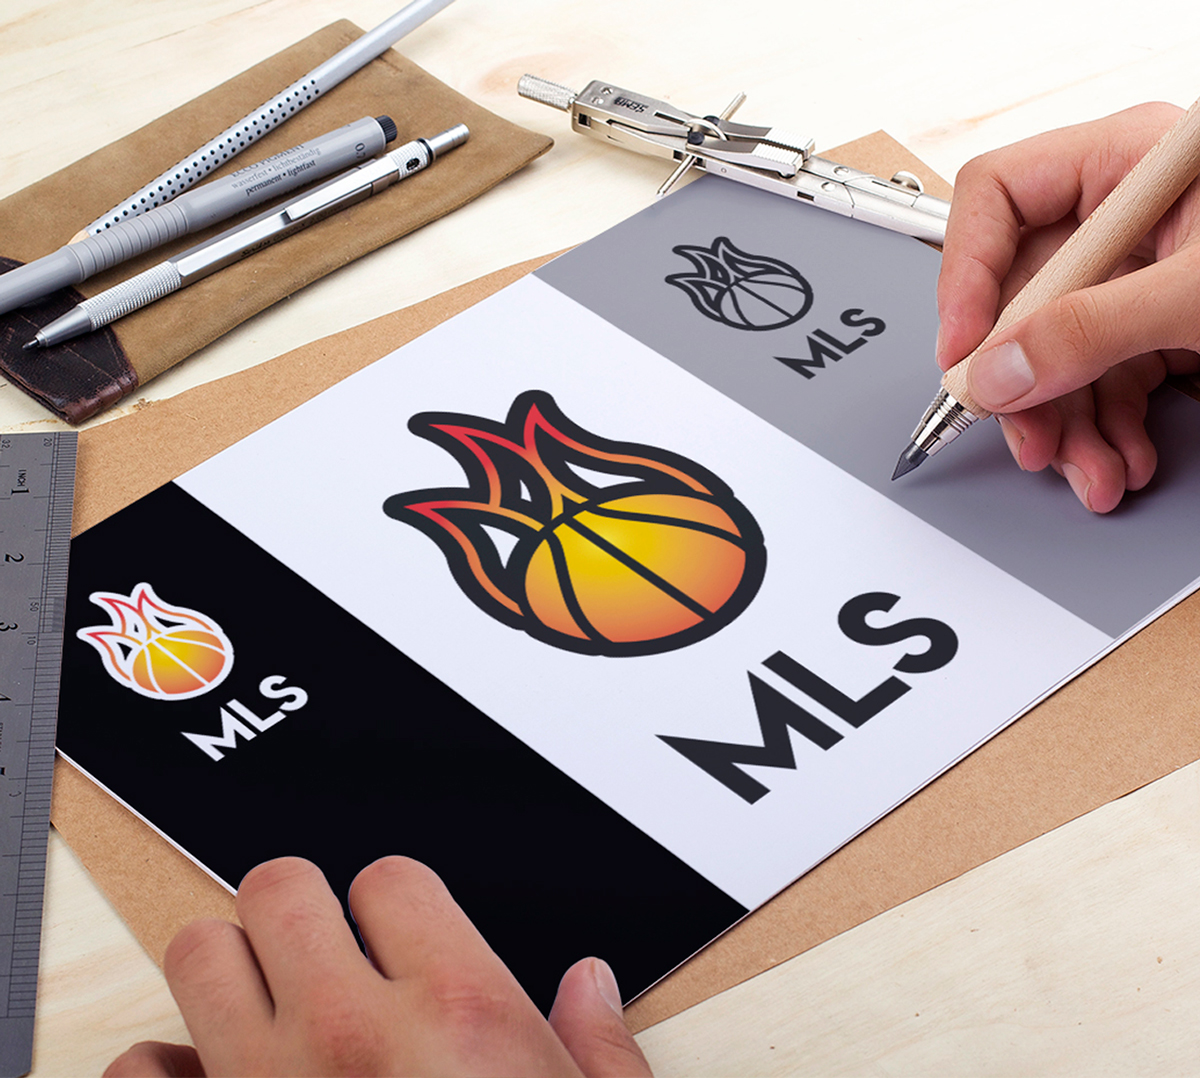 Presentation Creation Logo MLS - Coach Motivation Lifestyle Sport Basketball - Frejus